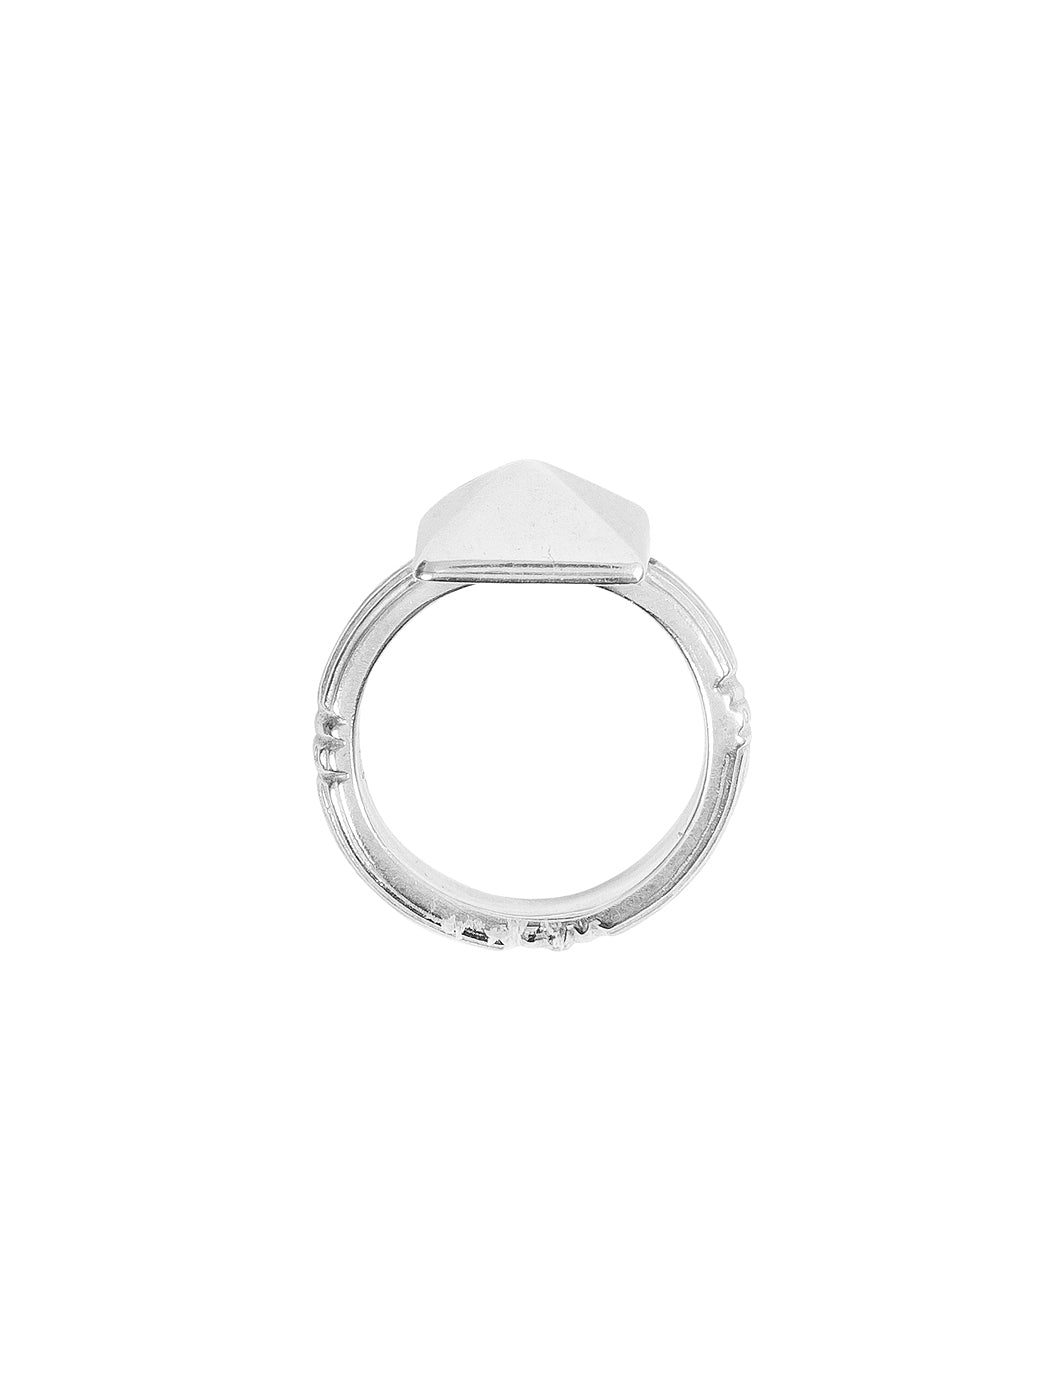 Fiorina Jewellery Pyramid Ring Side